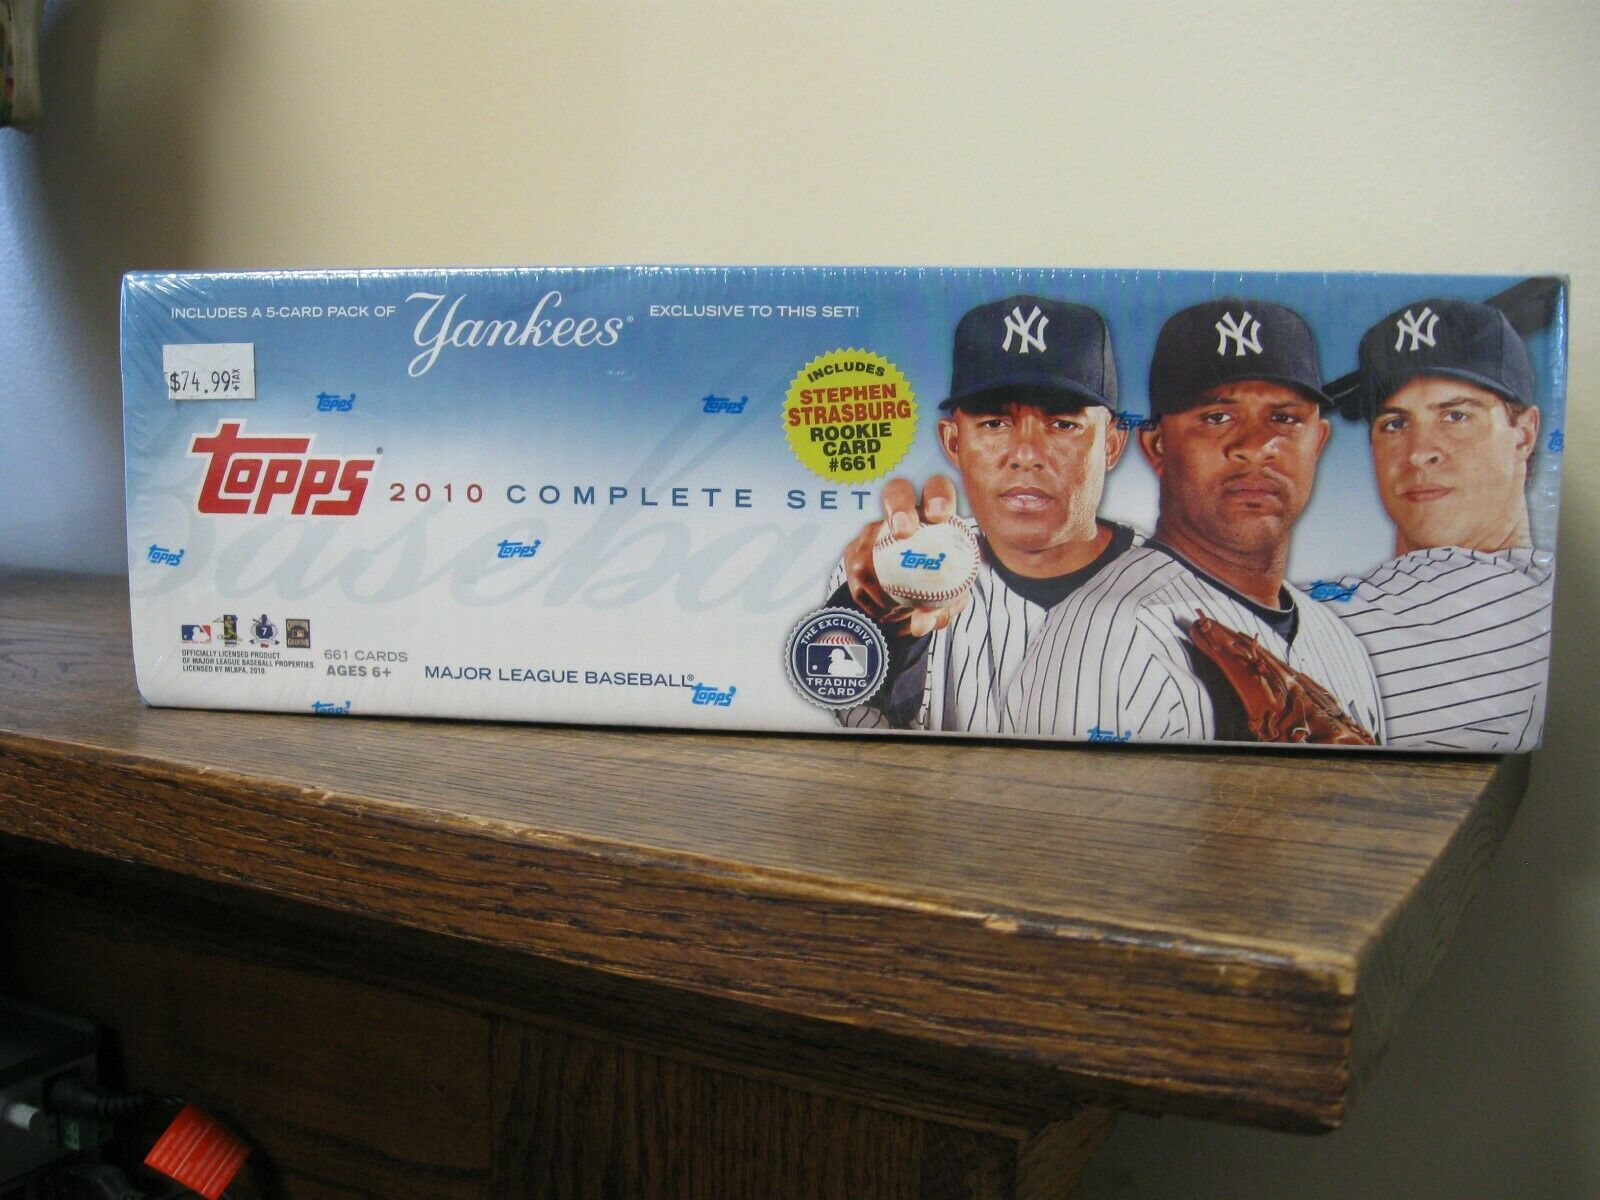 2010 TOPPS COMPLETE SET FACTORY SEALED 2 AVAILABLE